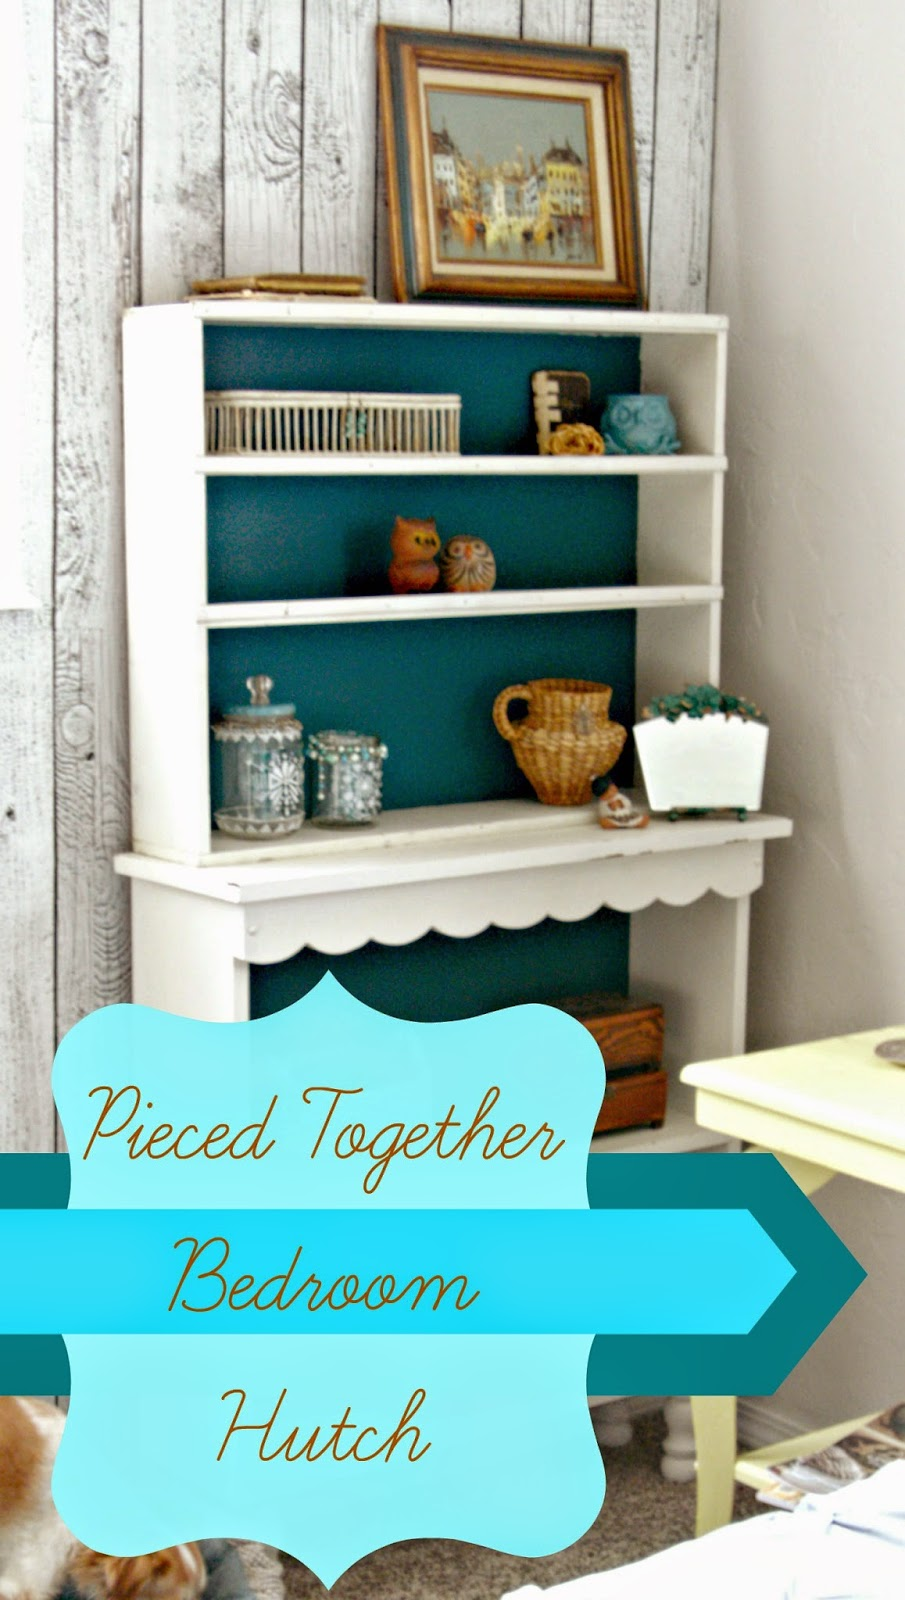 Marrying two mismatched shelves to create a hutch